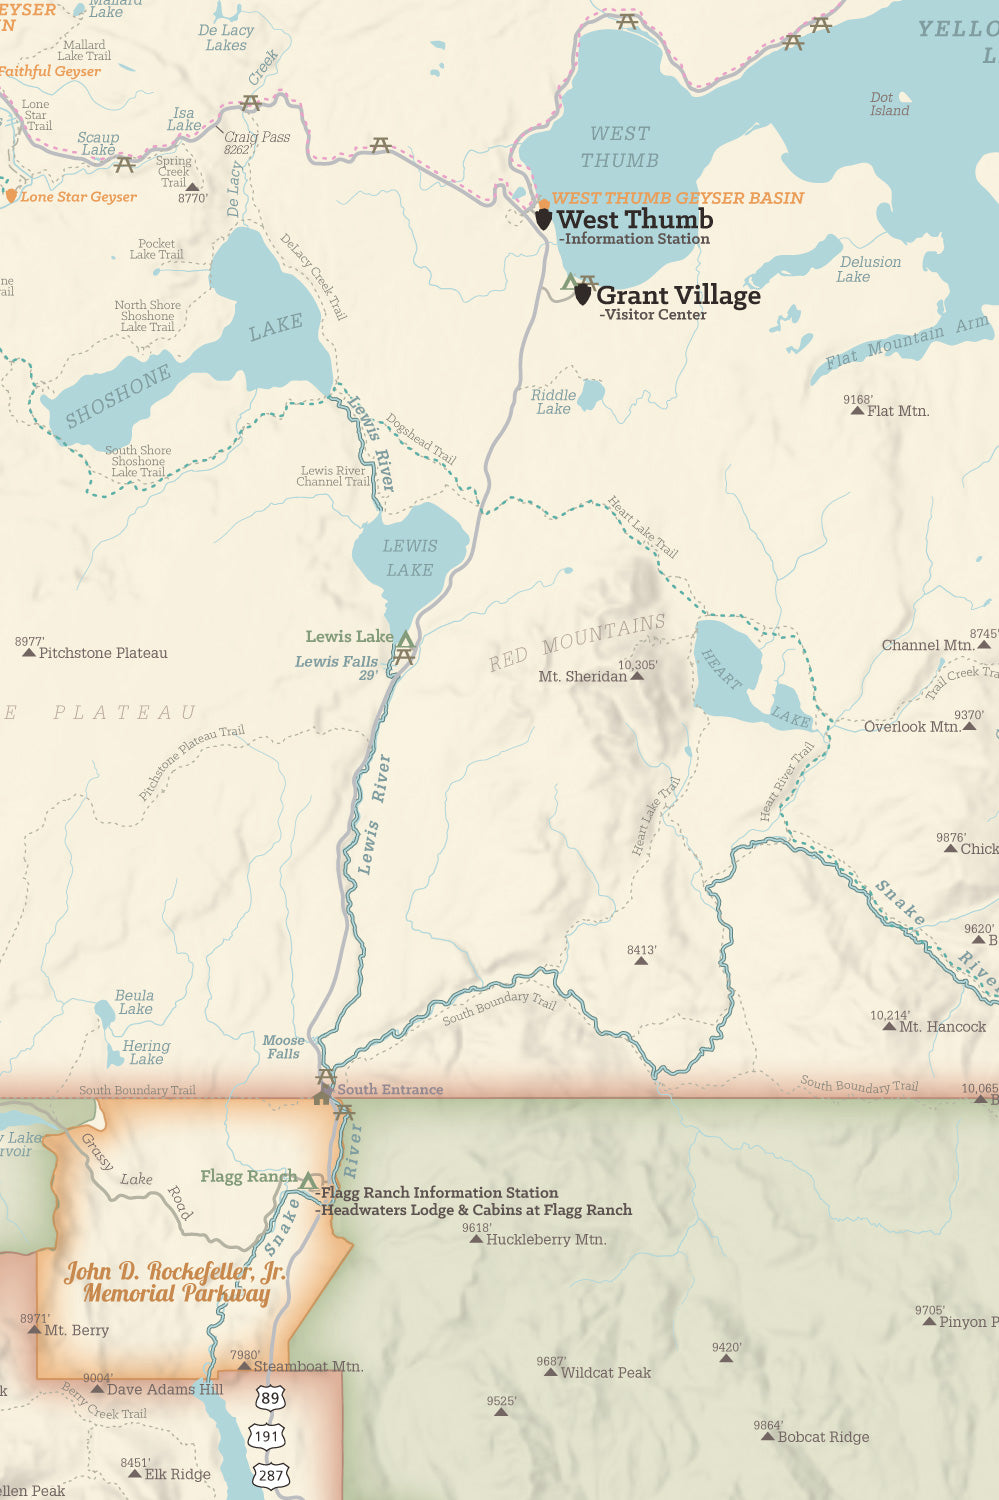 Yellowstone National Park Map 24x36 Poster on u.s. route 6 map, yellowstone fire of 1988, yellowstone driving map, yellowstone usa map, yellowstone maps and travel guides, yellowstone park activities, yellowstone river map, national park to park highway map, yellowstone topo map, plateaus of yellowstone national park, yellowstone fishing map, philadelphia and lancaster turnpike map, yellowstone volcano damage map, detailed yellowstone map, waterfalls in yellowstone national park, yellowstone elevation maps, yellowstone on us map, geothermal areas of yellowstone, grand canyon of the yellowstone, yellowstone destruction zone, small mammals of yellowstone national park, yellowstone canyon map, yellowstone grand teton national park, yellowstone earthquake, yellowstone national park, grand canyon national park map, yellowstone wyoming map, animals of yellowstone, fishes of yellowstone national park, angling in yellowstone national park,